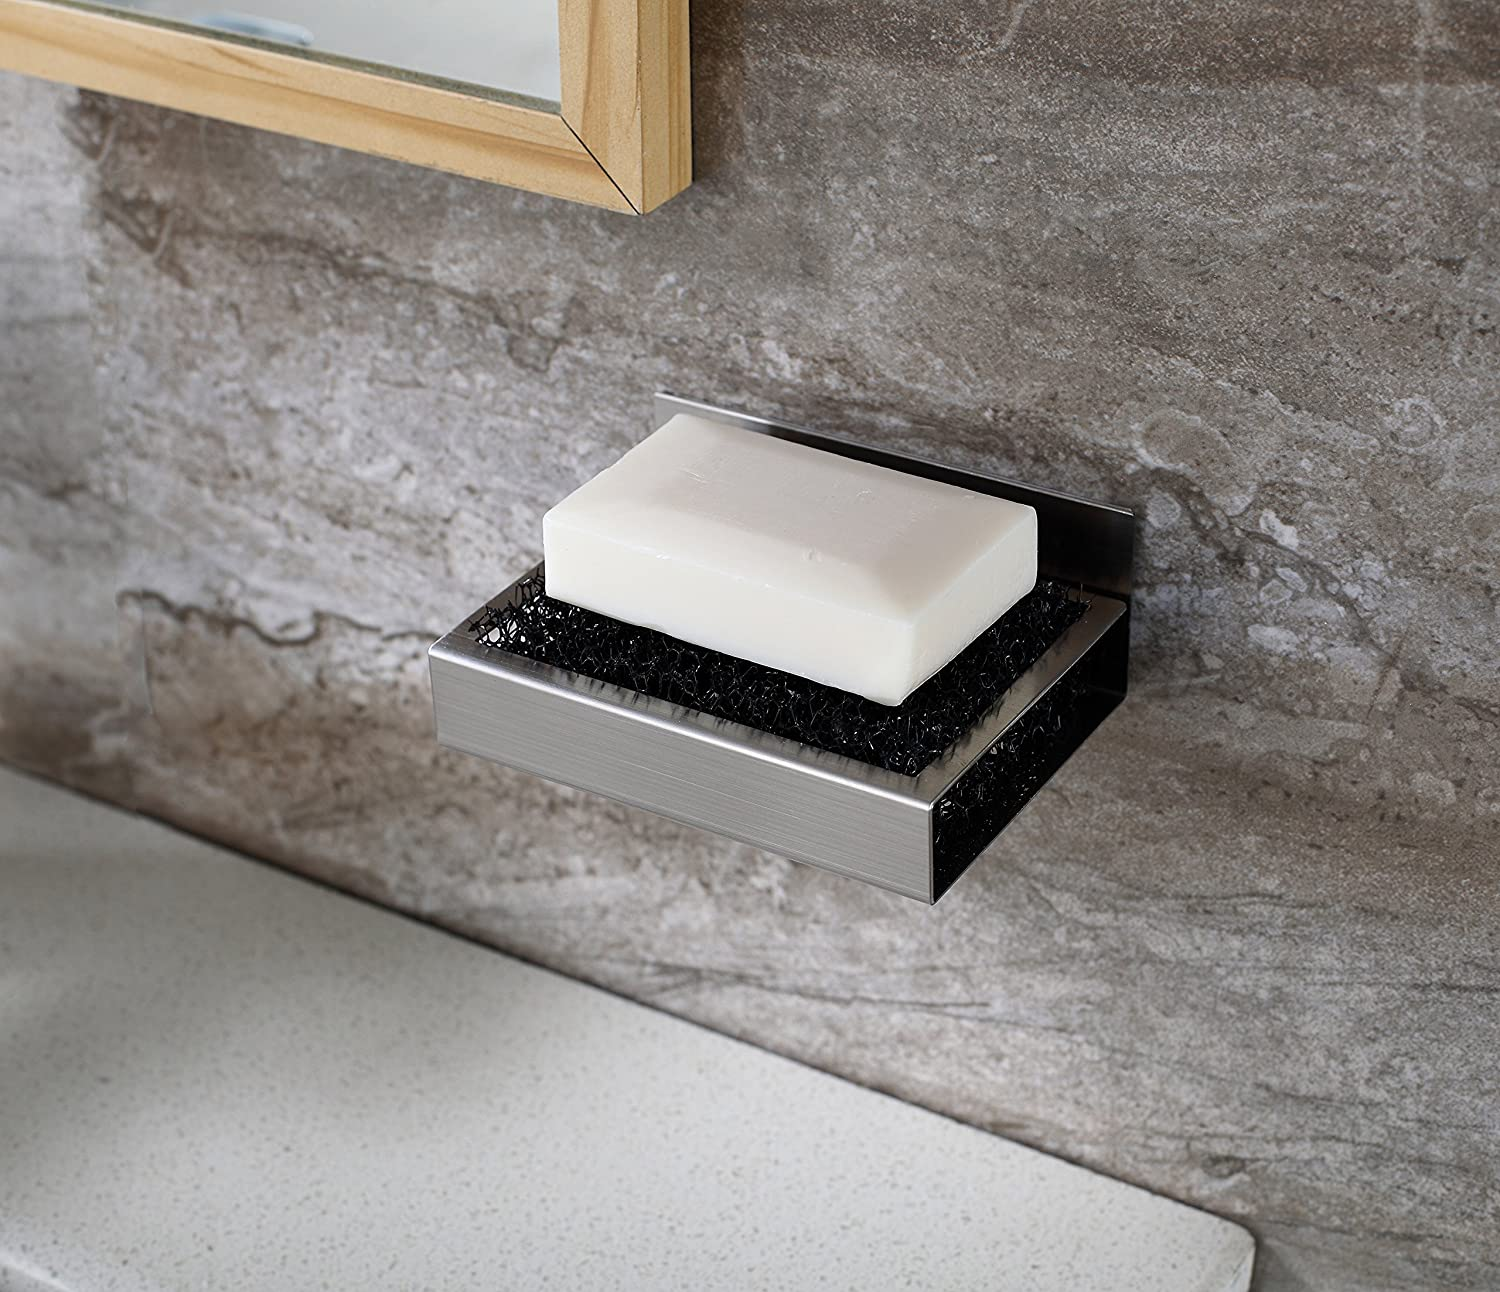 Bathroom Soap Dish Holder Dispensers Wall Mount Self Adhesive Stainless Steel Ebay